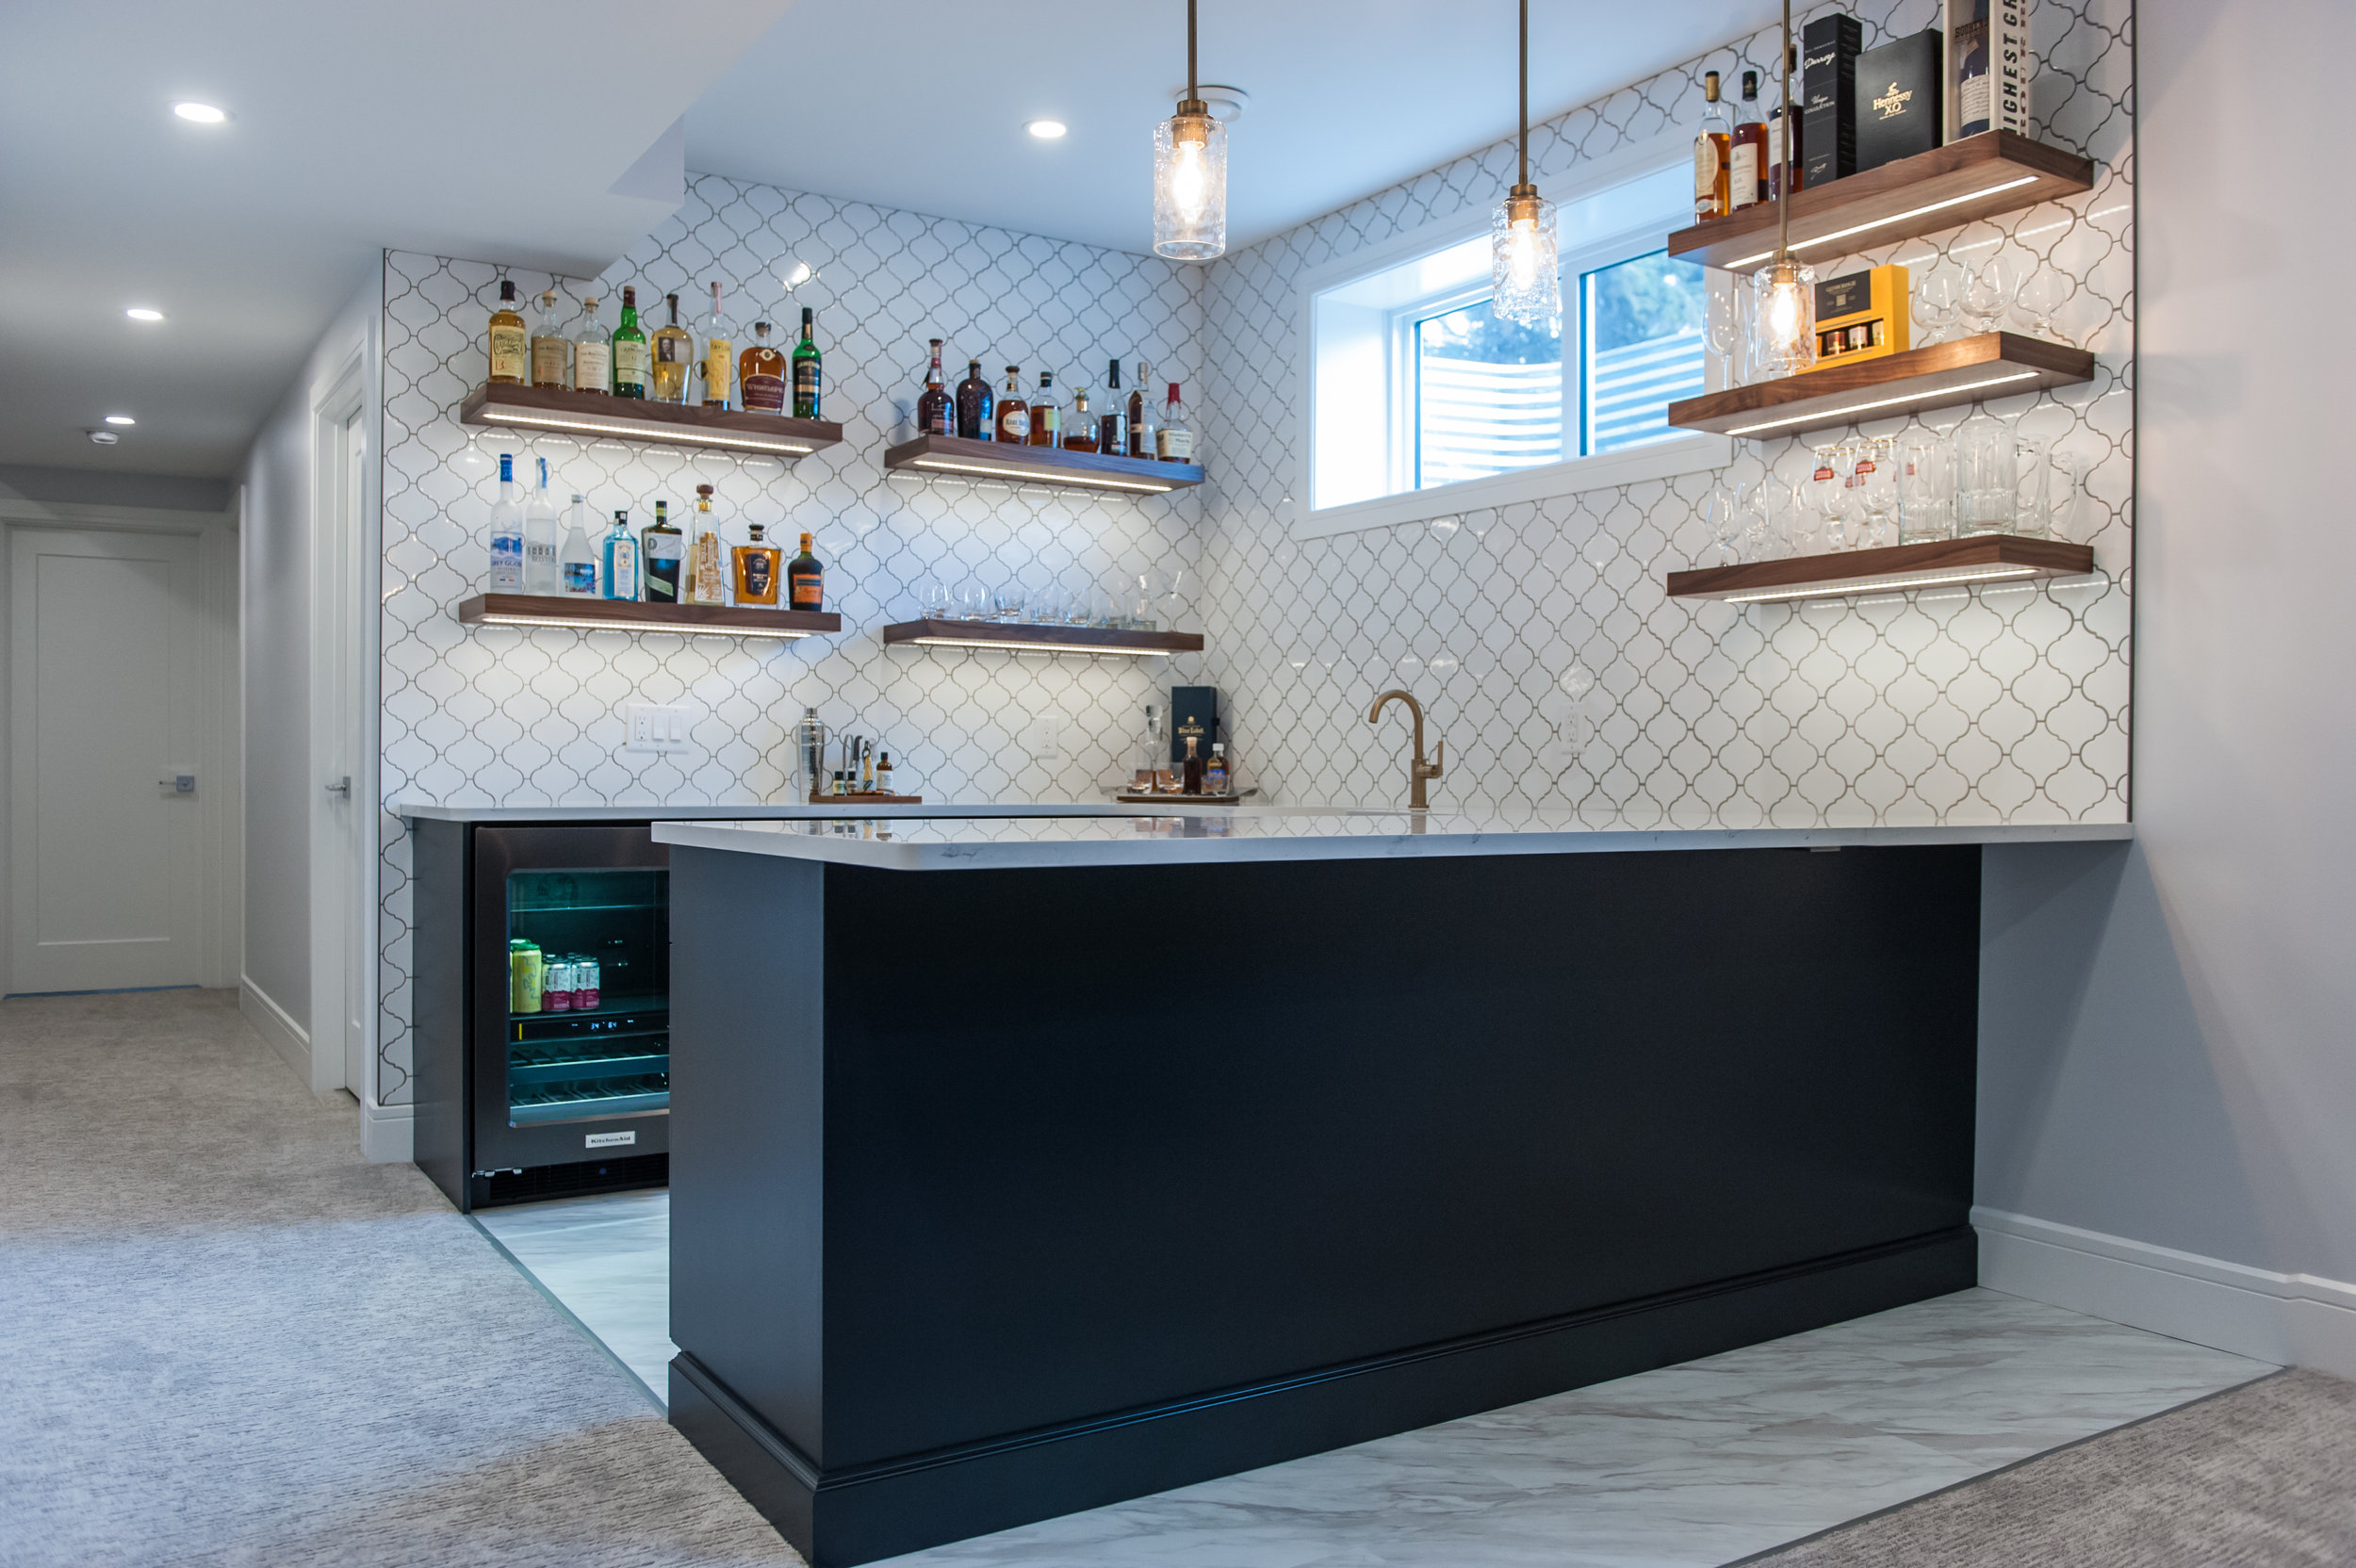 bar_blue_cabinetry_navy